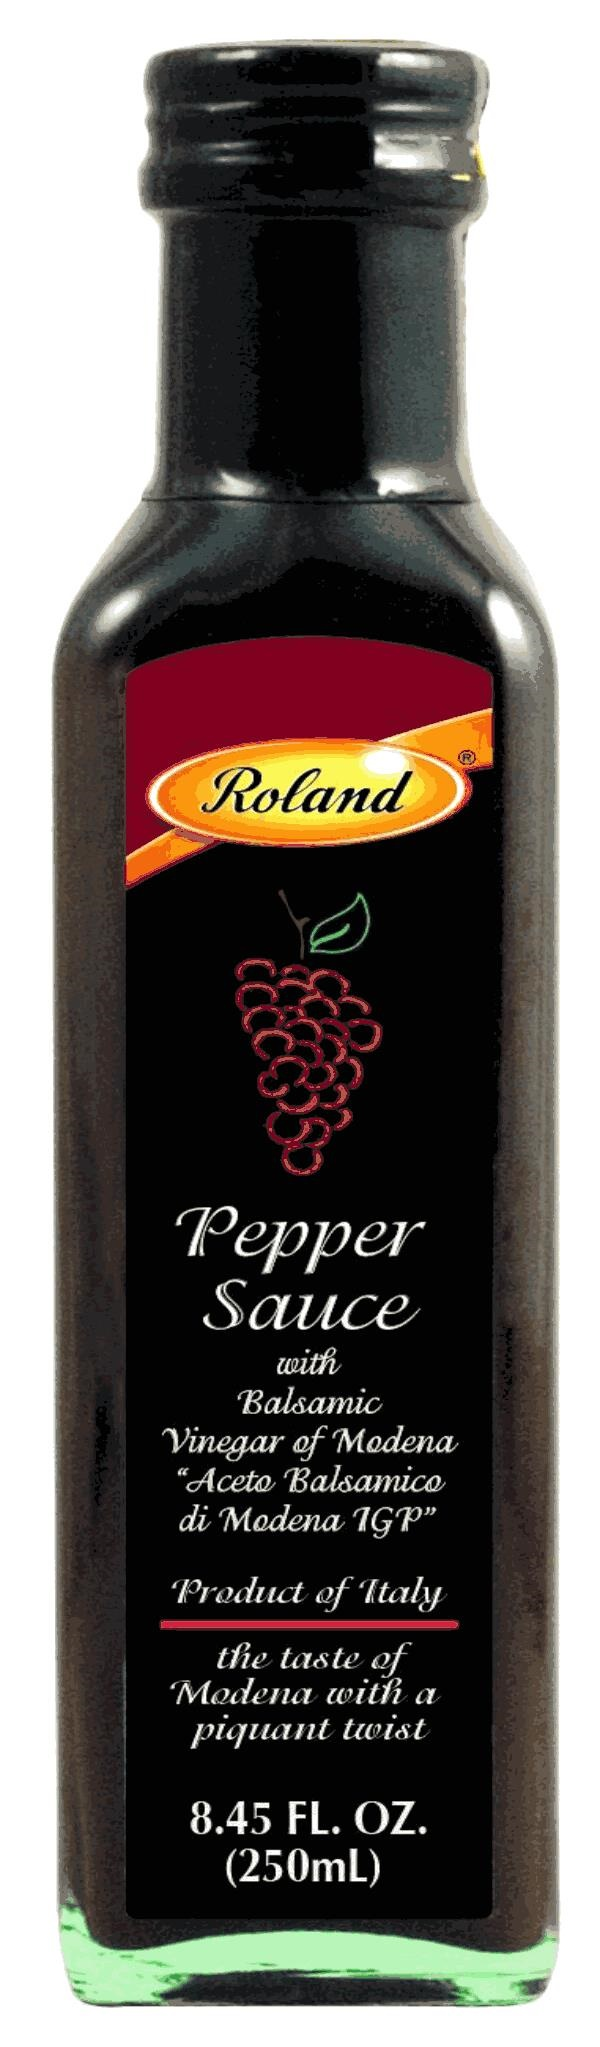 Picture of Balsamic Hot Sauce - Roland Balsamic Hot Pepper Sauce 8.5 oz - Item No. 13522